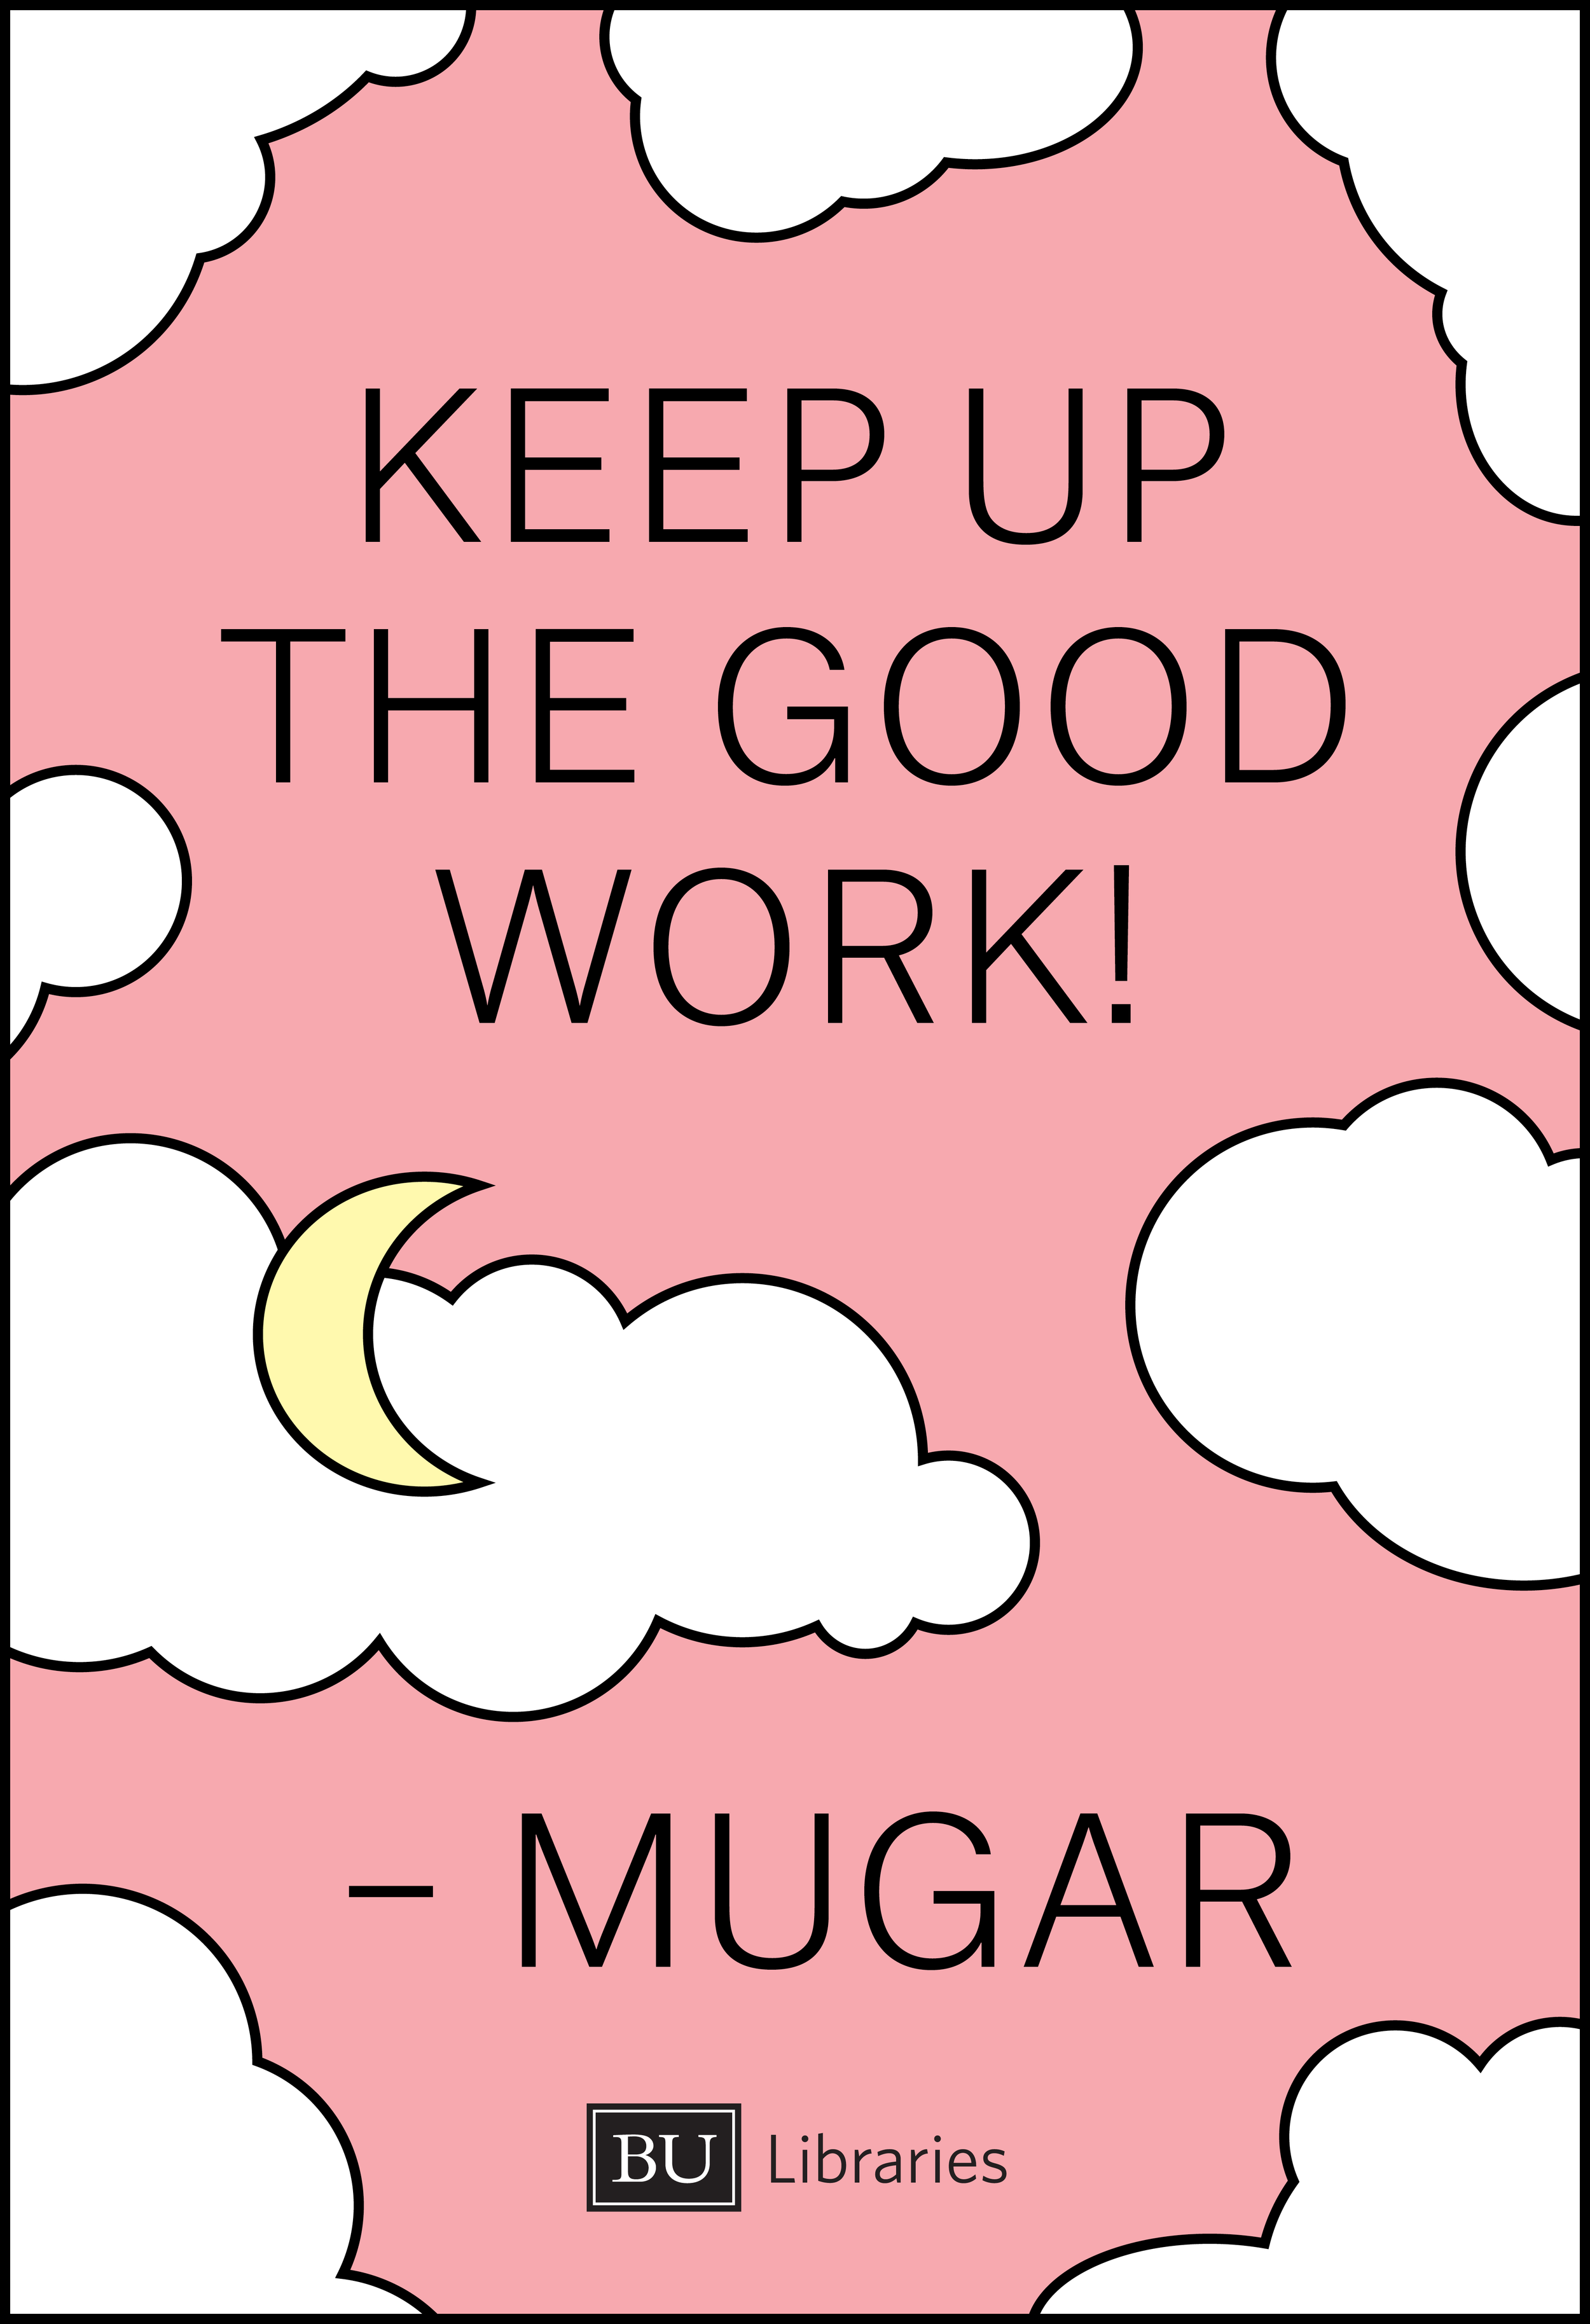 During finals, we design uplifting posters that hopefully ease the tension in the library during the stressful time of year.